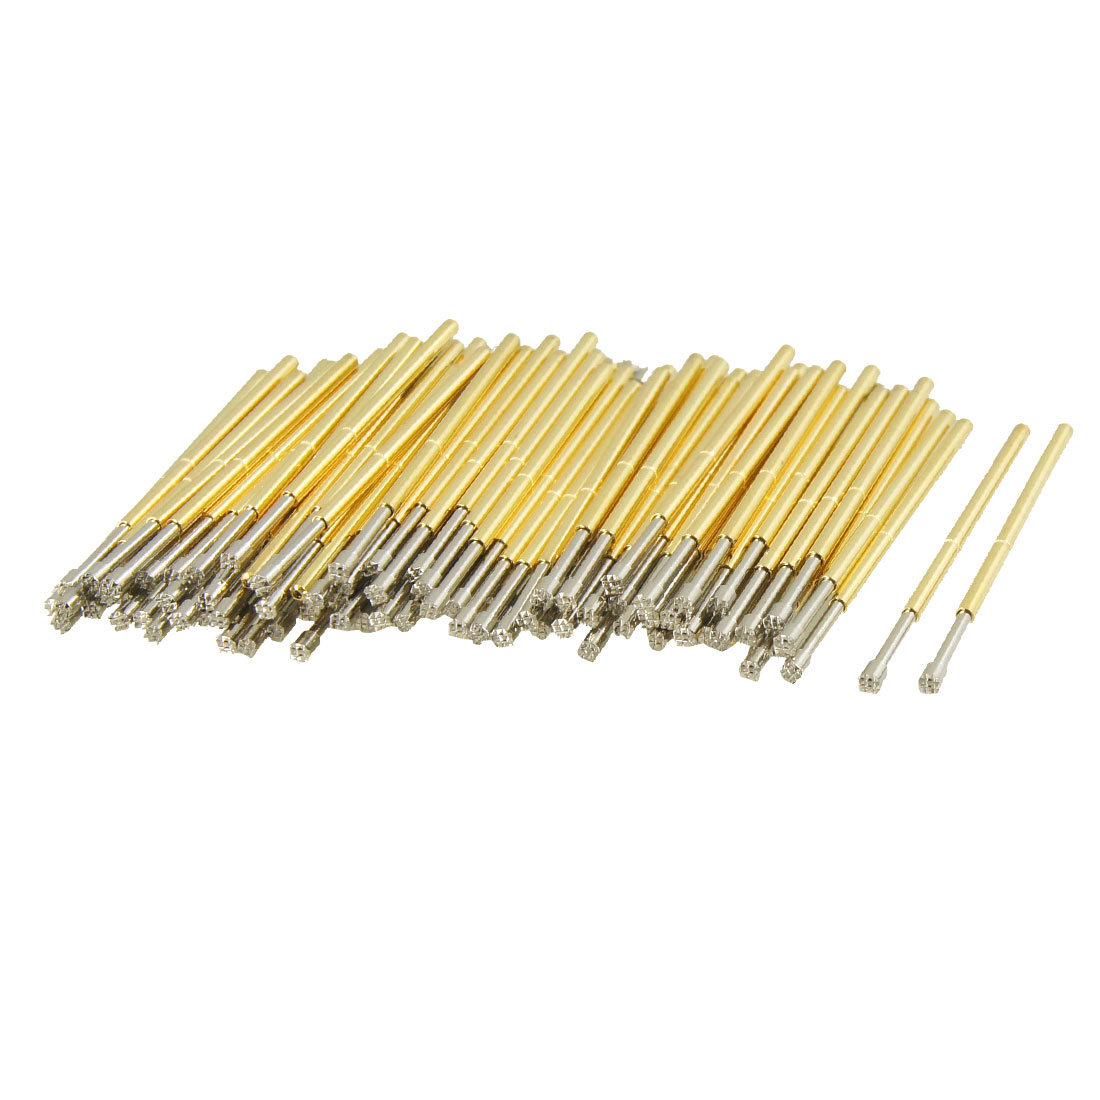 100 Pcs 9100H 1.5mm Serrated Tip Diameter Spring Test Probes Pins